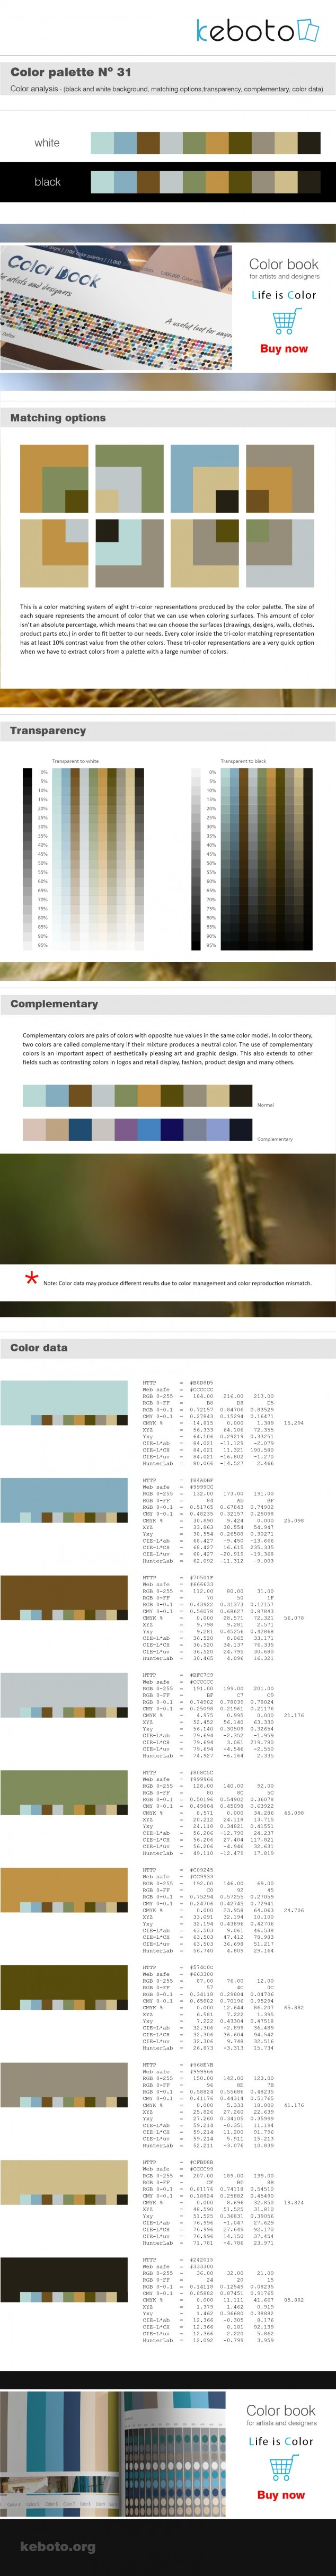 Keboto - Color Palette Νο31